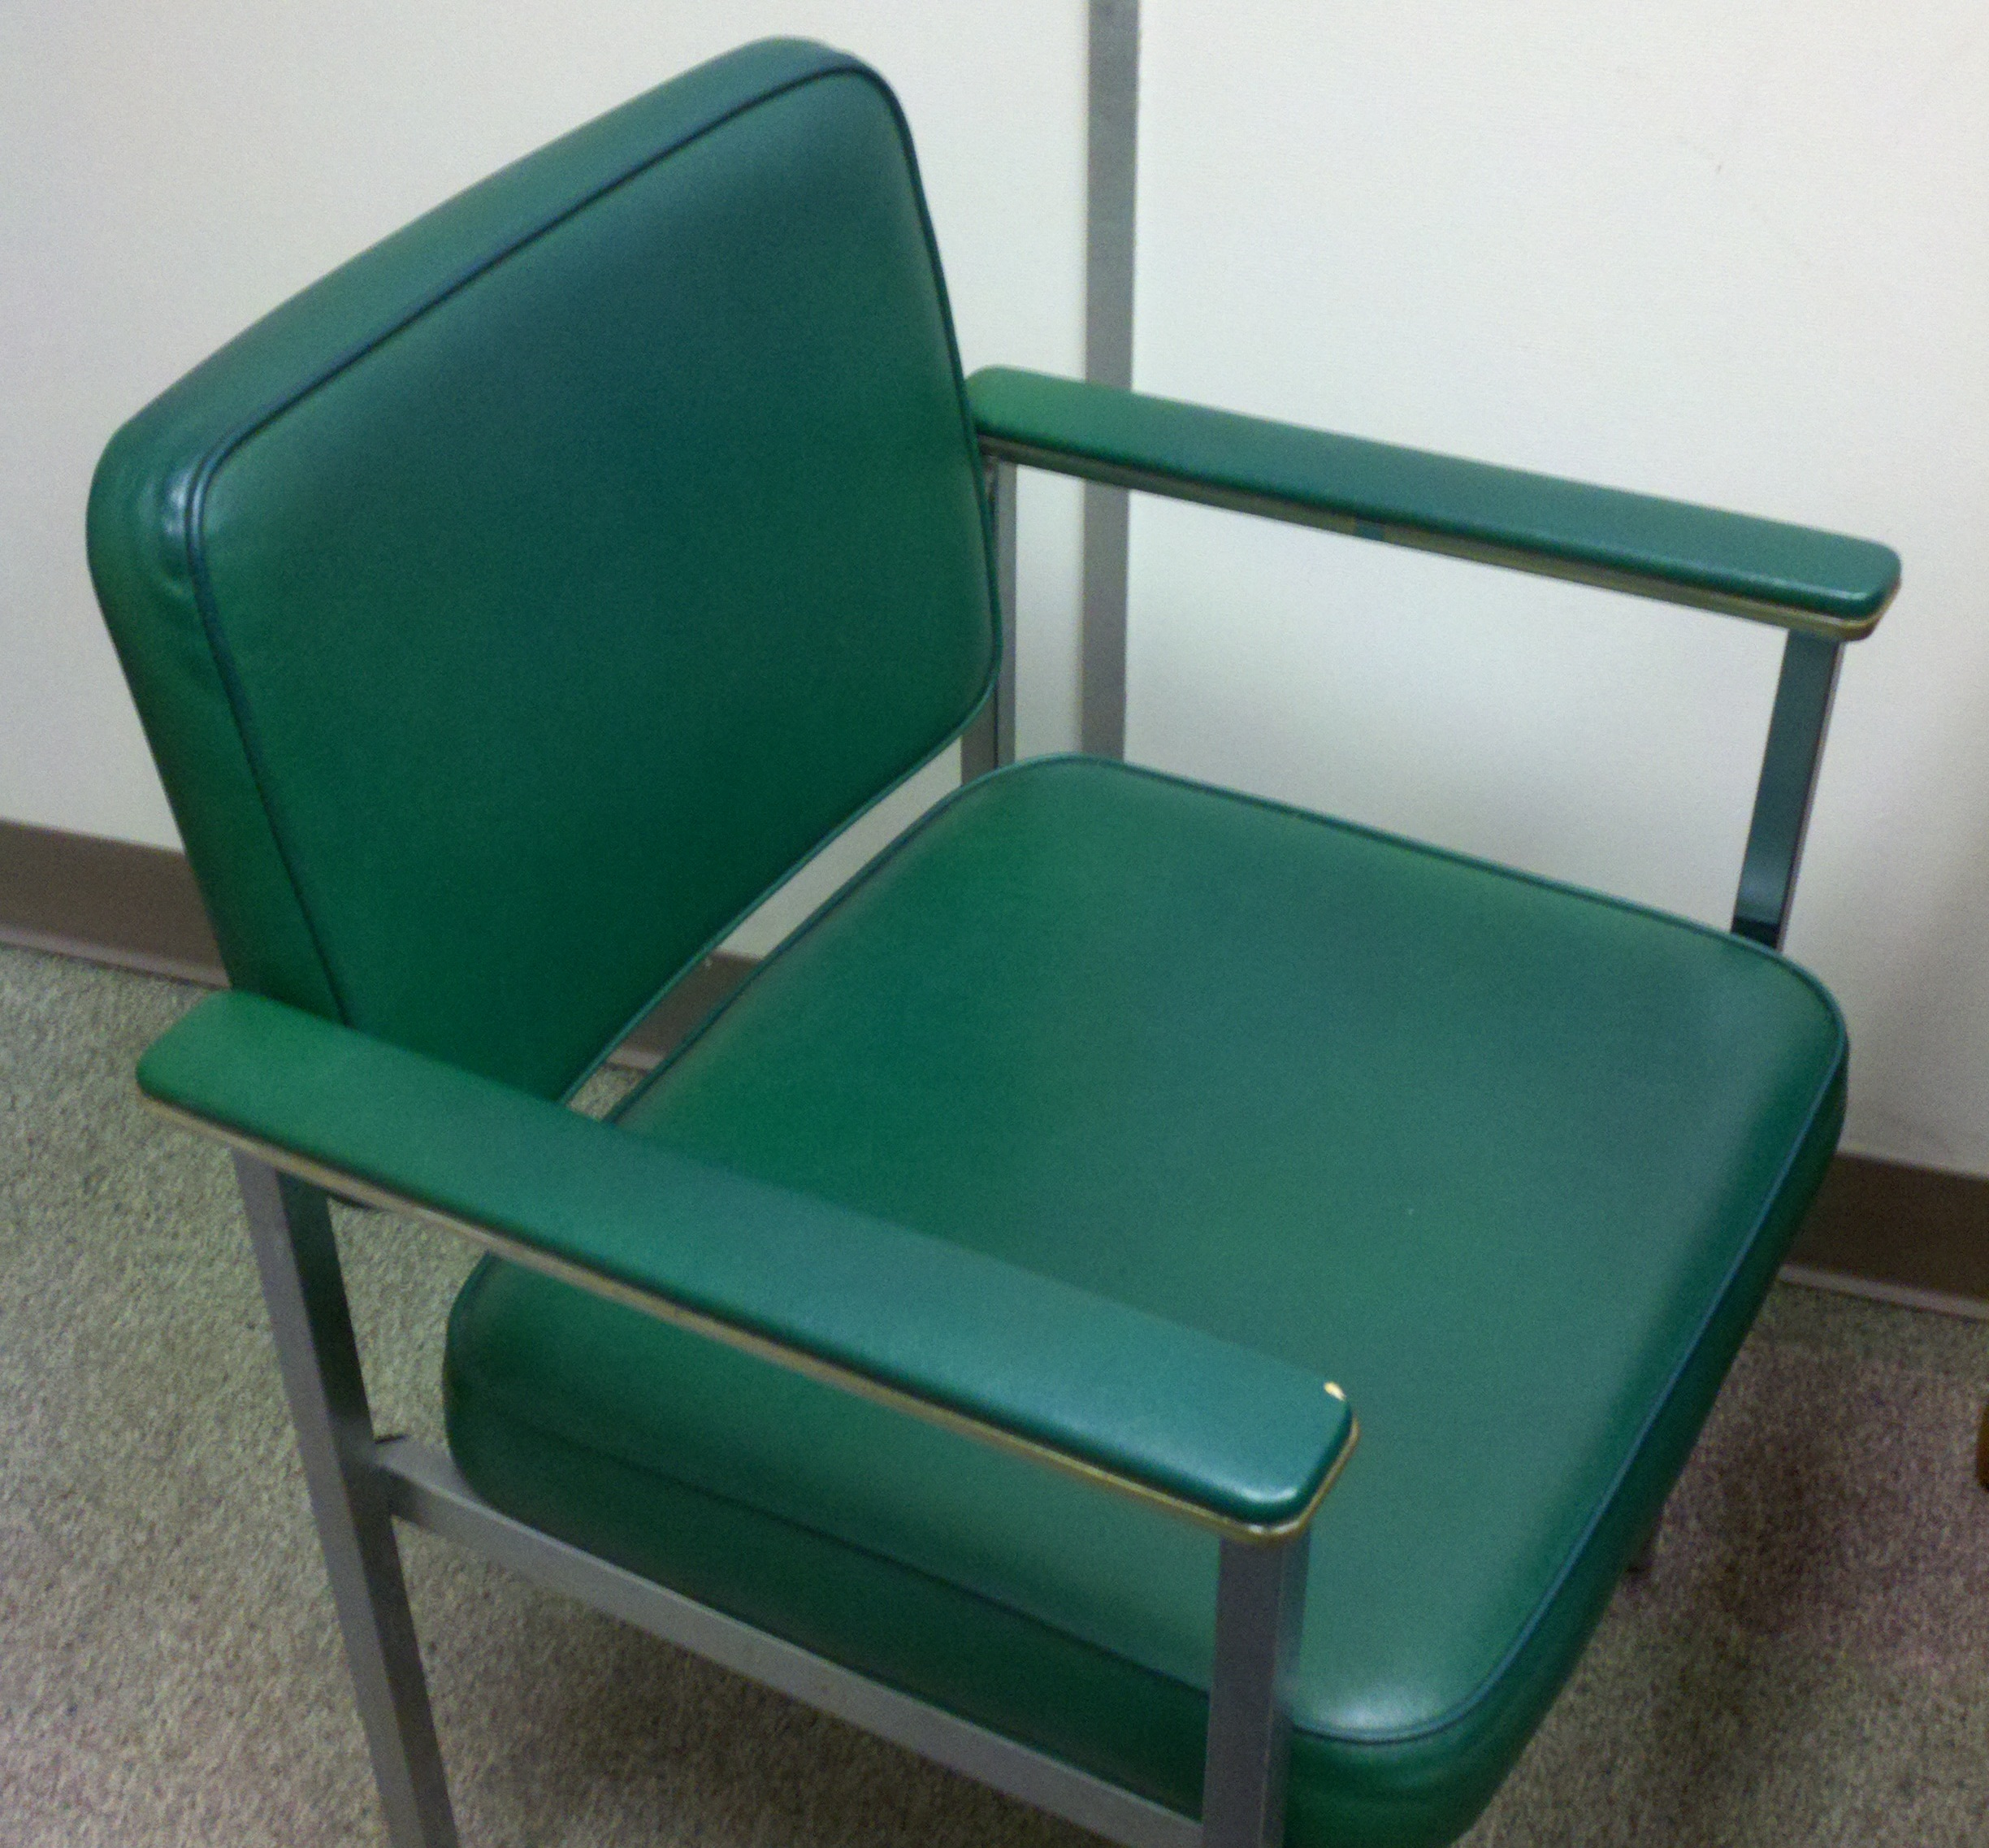 FileAwesome green chair.jpg & File:Awesome green chair.jpg - Wikimedia Commons